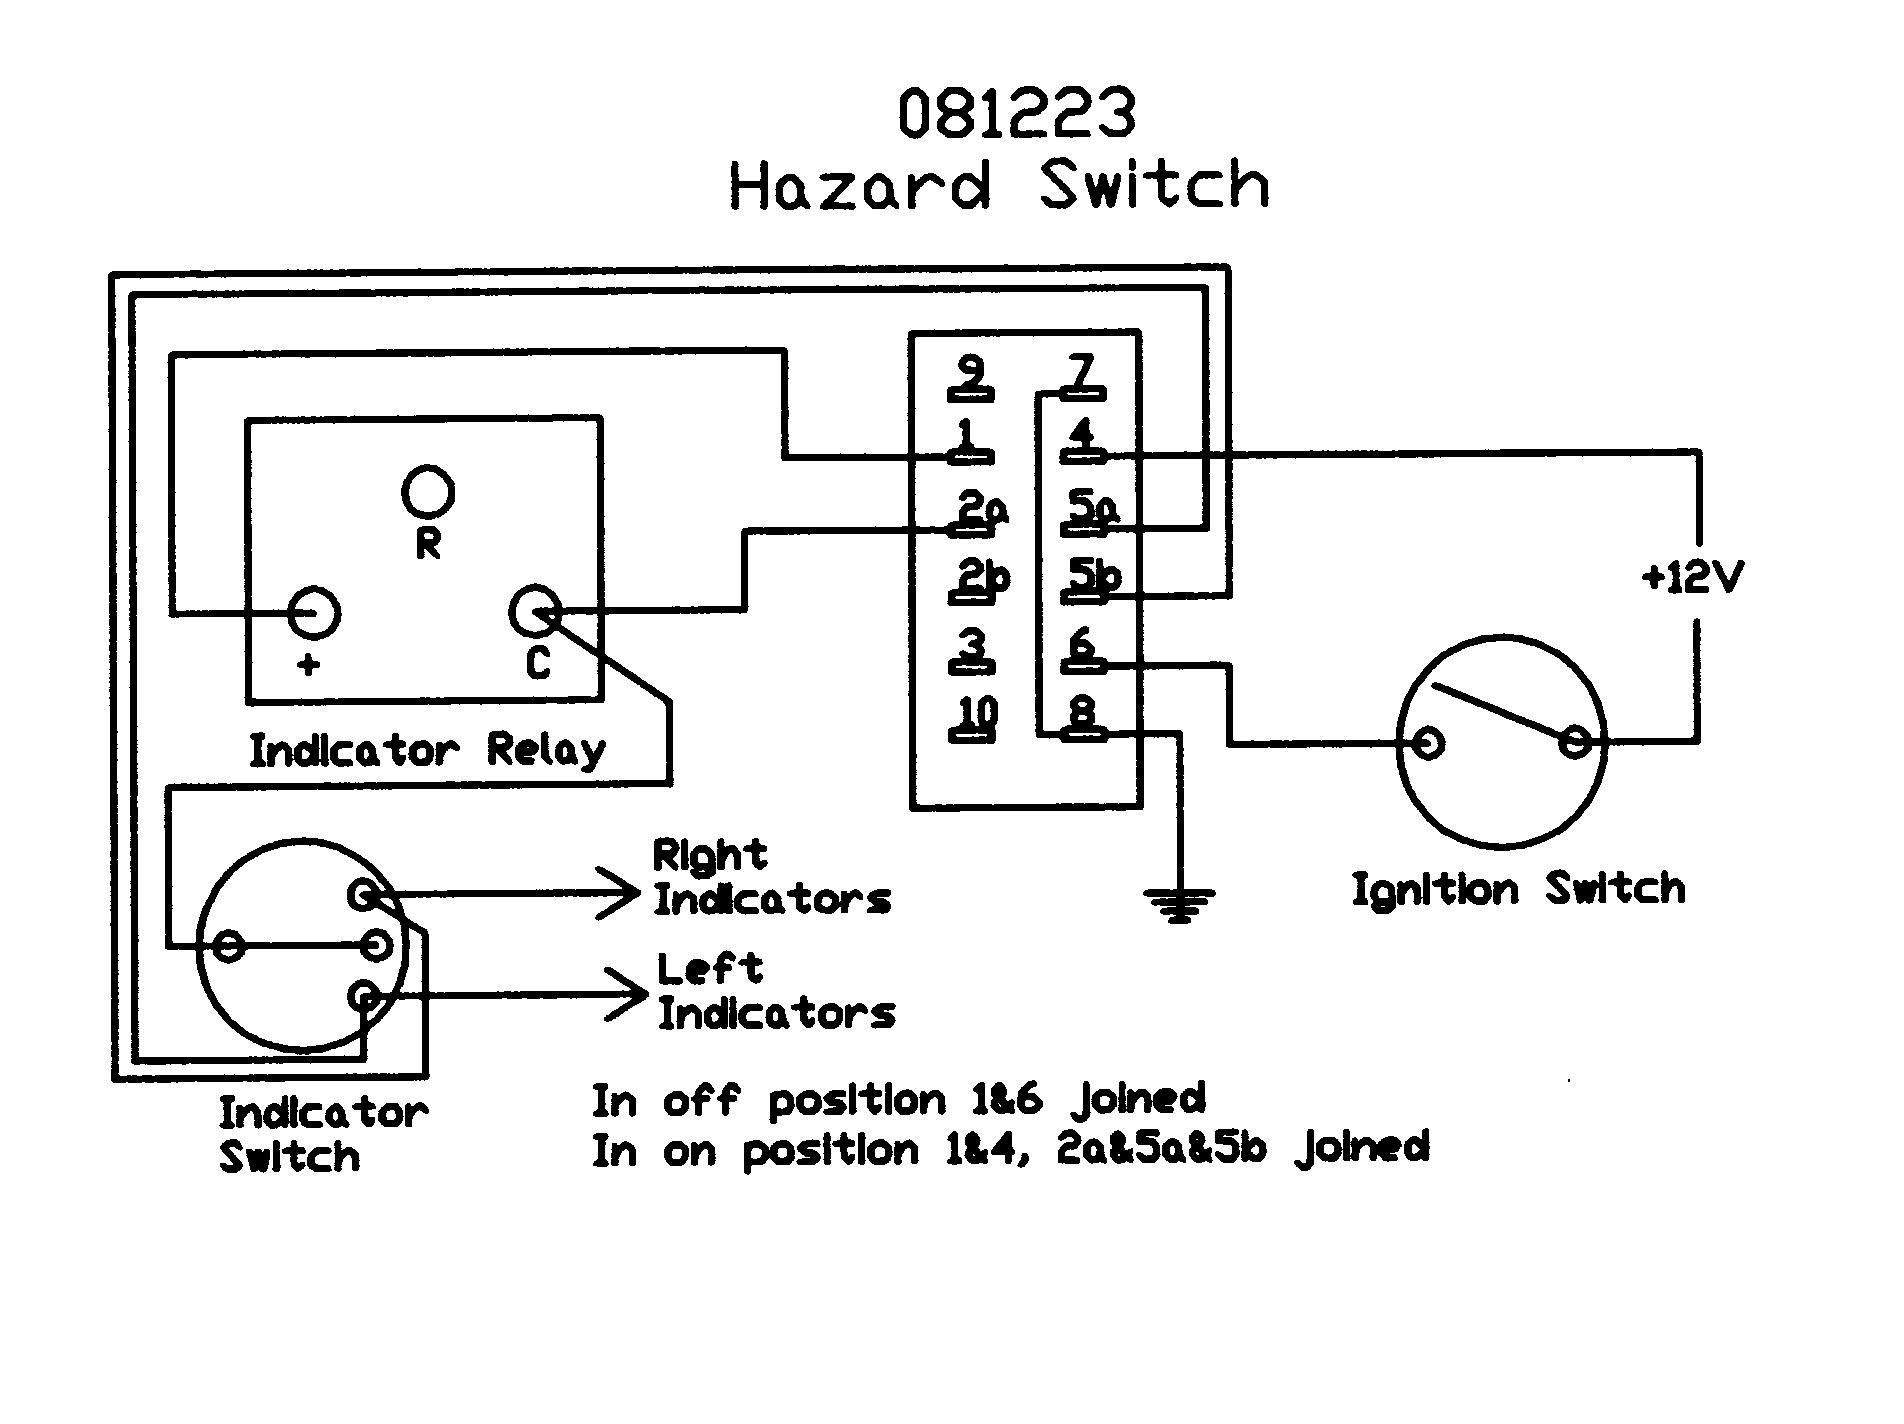 Rocker hazard switch 081223 wiring diagram asfbconference2016 Image collections